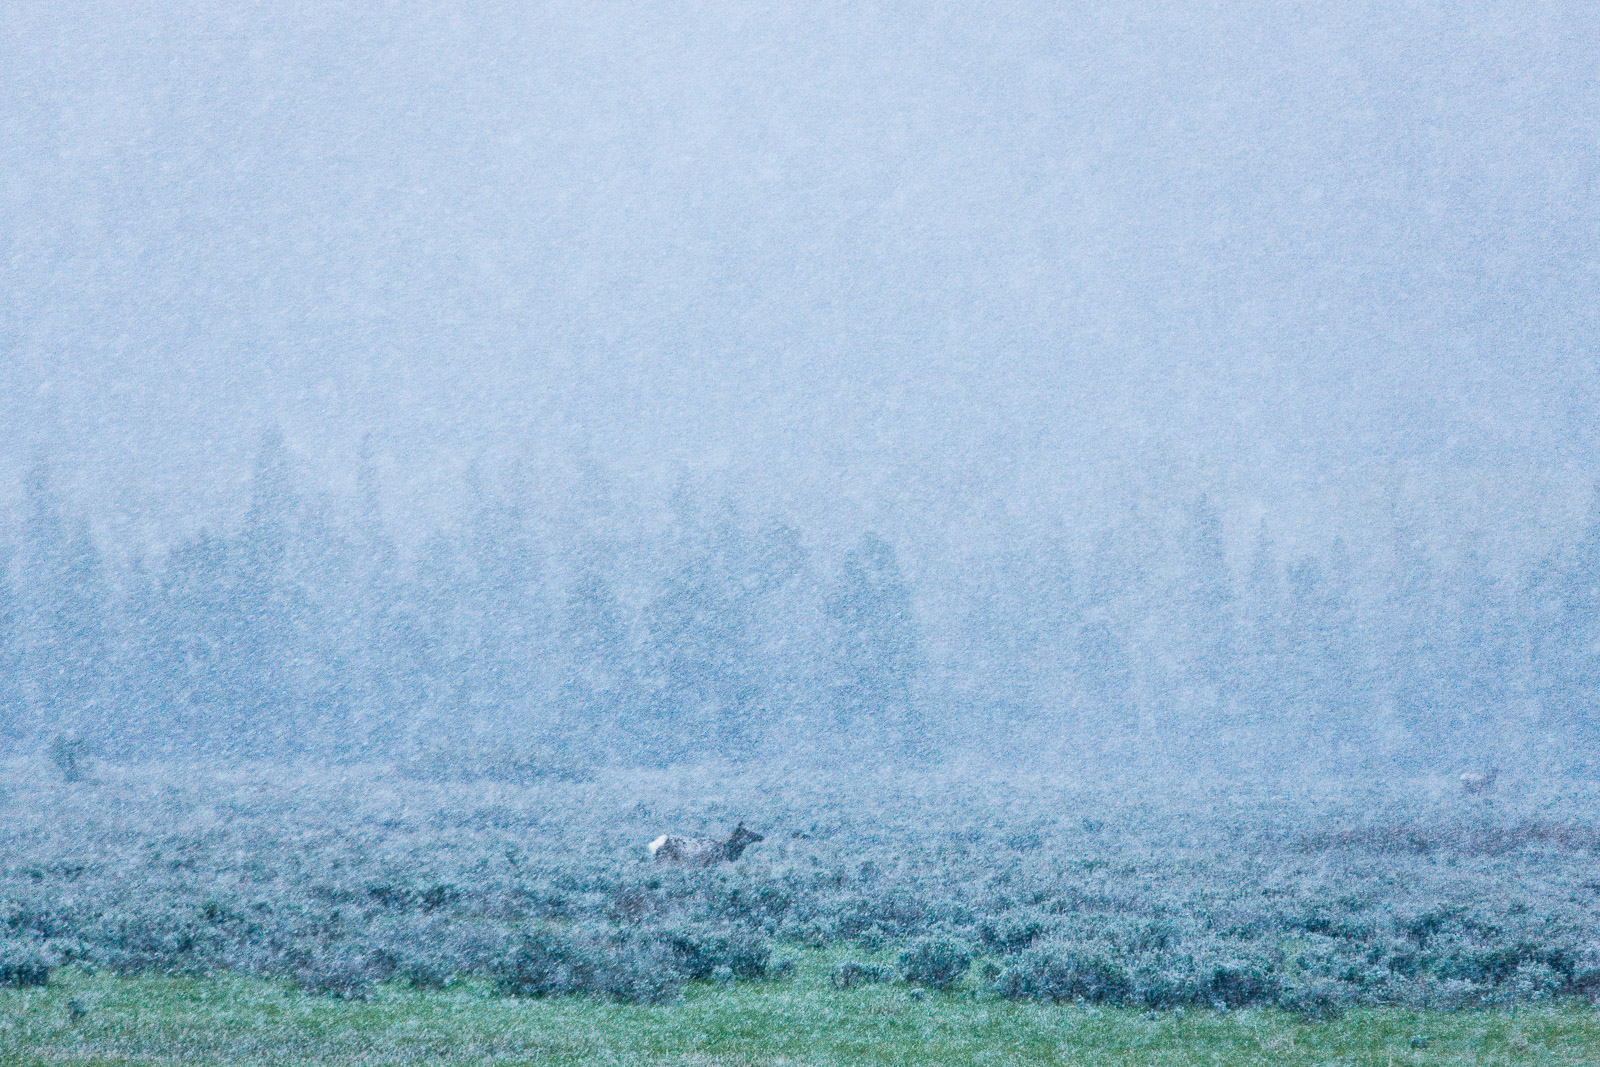 Spring Storms,rand Teton National Park,blue, green, grass,storm,horizontal,landscape, elk, photo